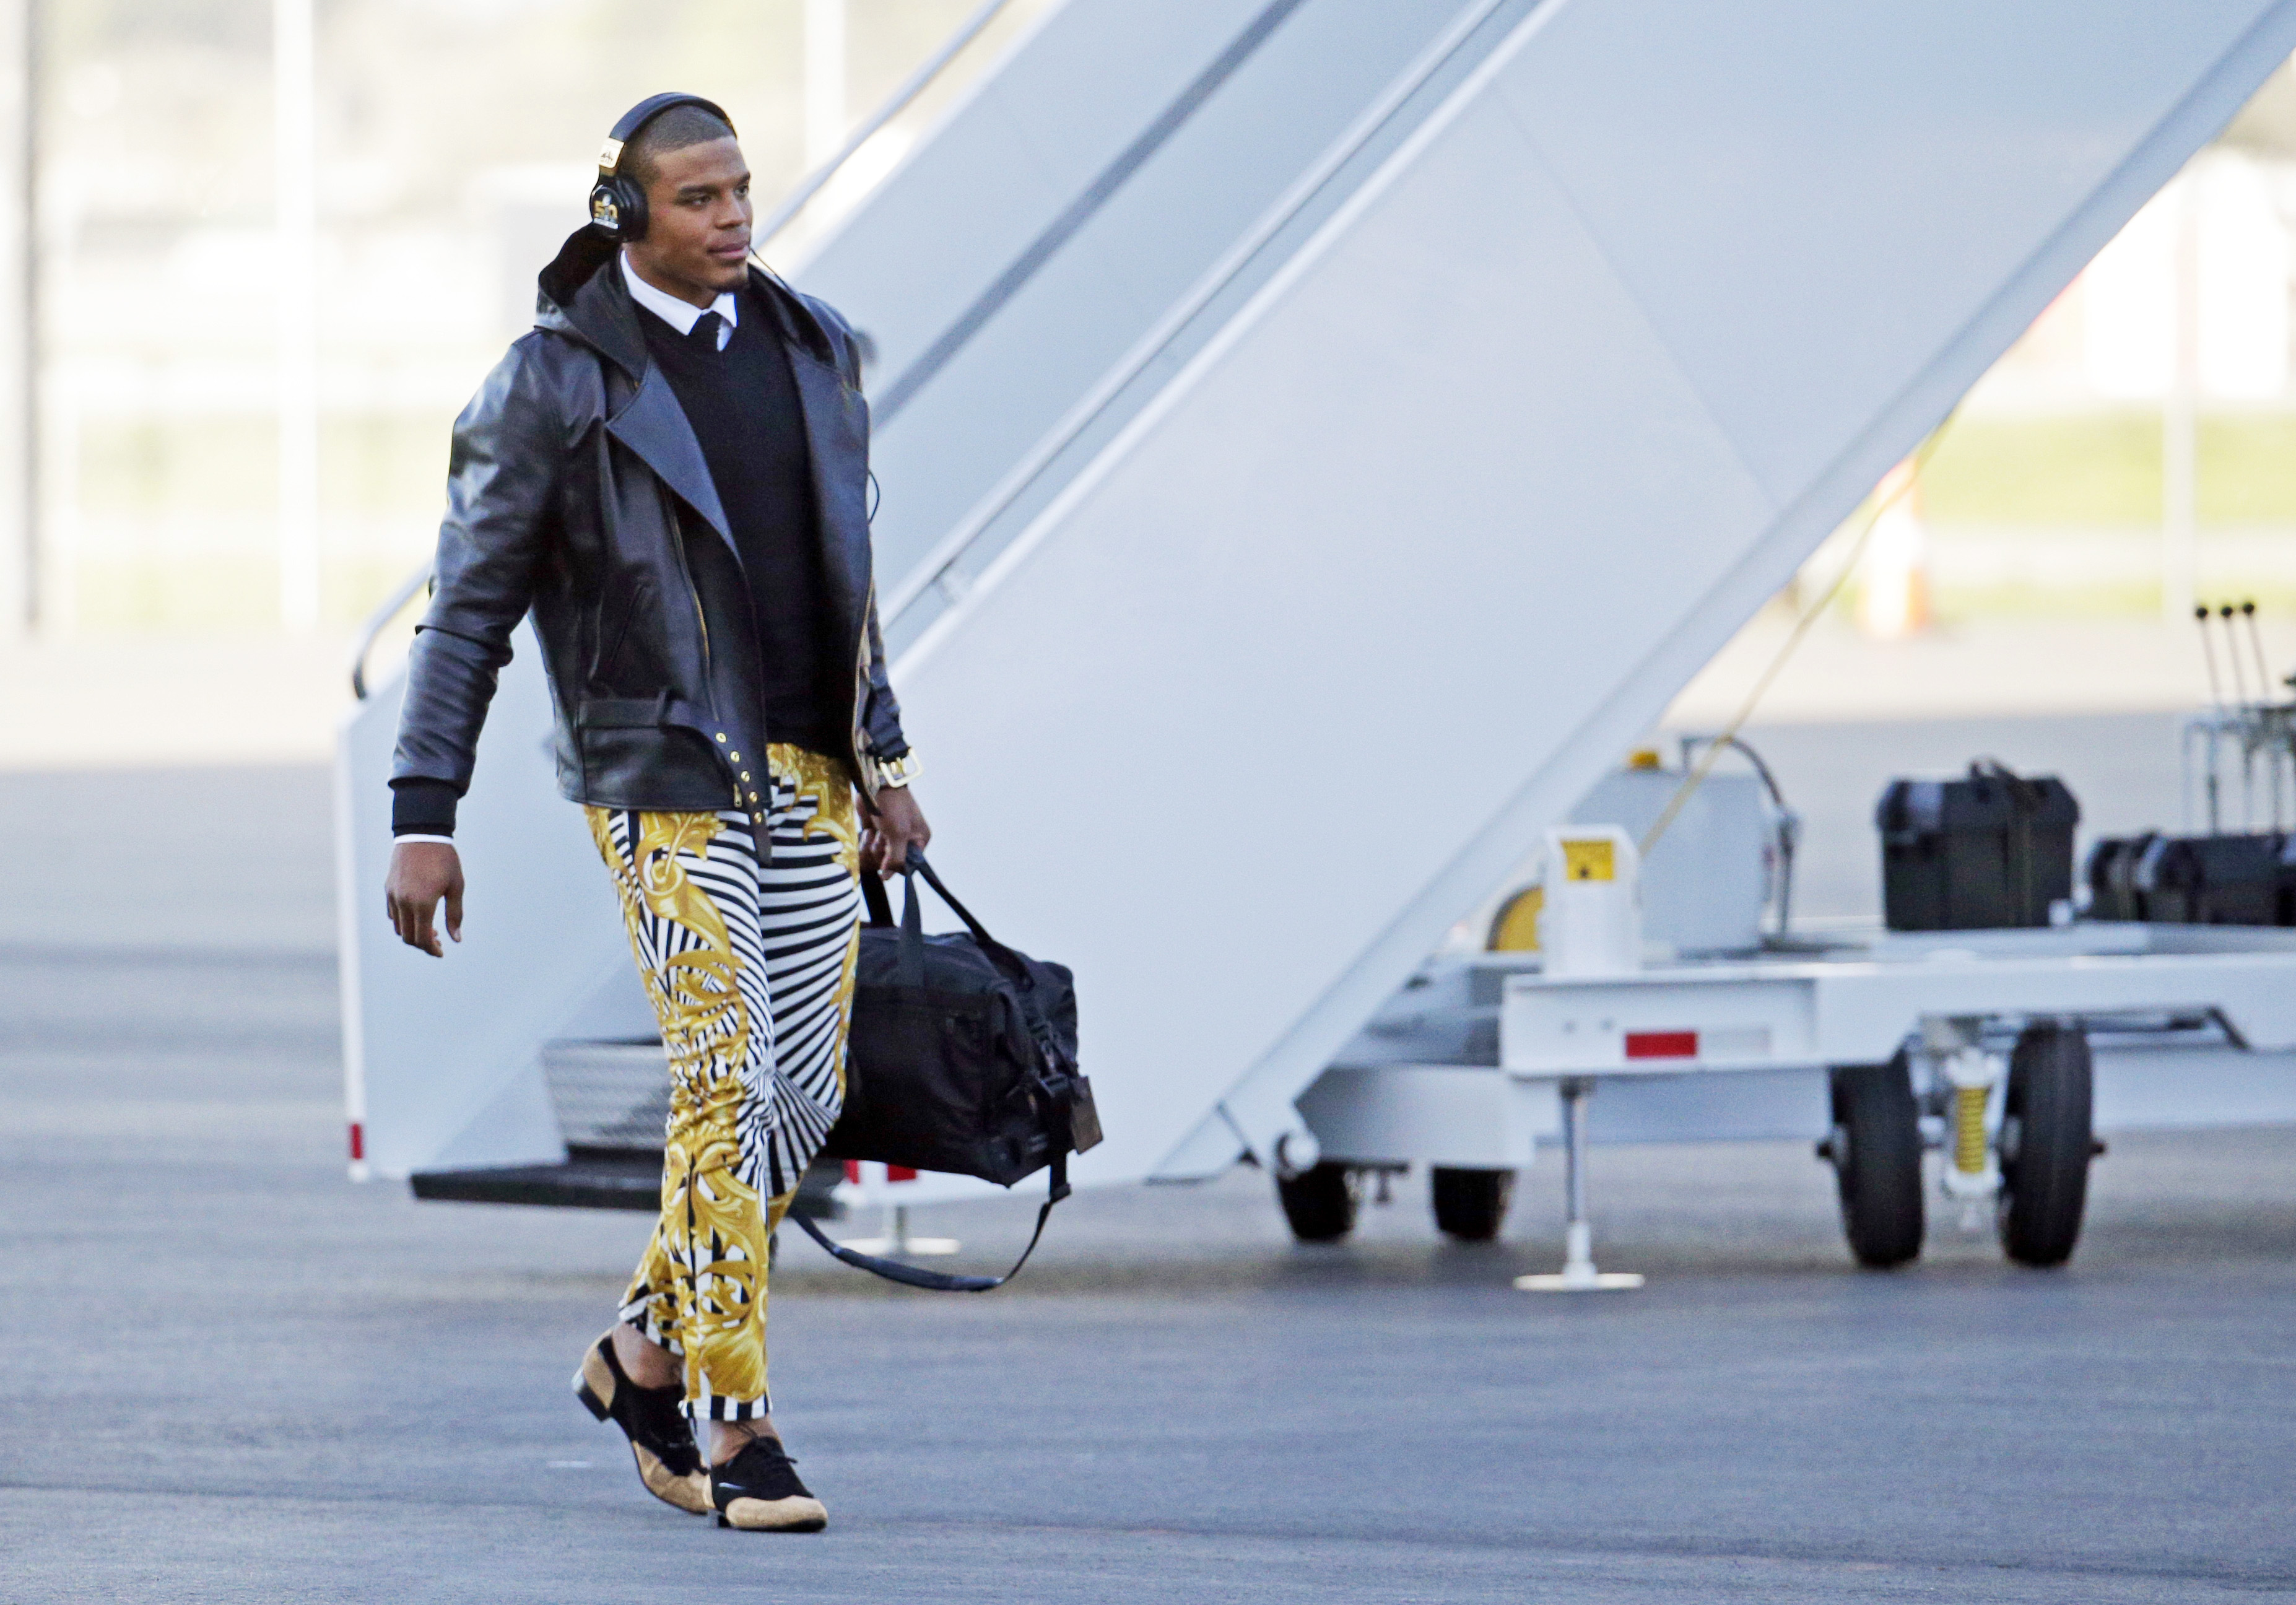 FILE - In this Jan. 31, 2016 file photo, Carolina Panthers quarterback Cam Newton gets off the plane at the Mineta San Jose International Airport in San Jose, Calif.  The Panthers play the Denver Broncos on Sunday, Feb. 7, 2015, in Super Bowl 50. Newton w